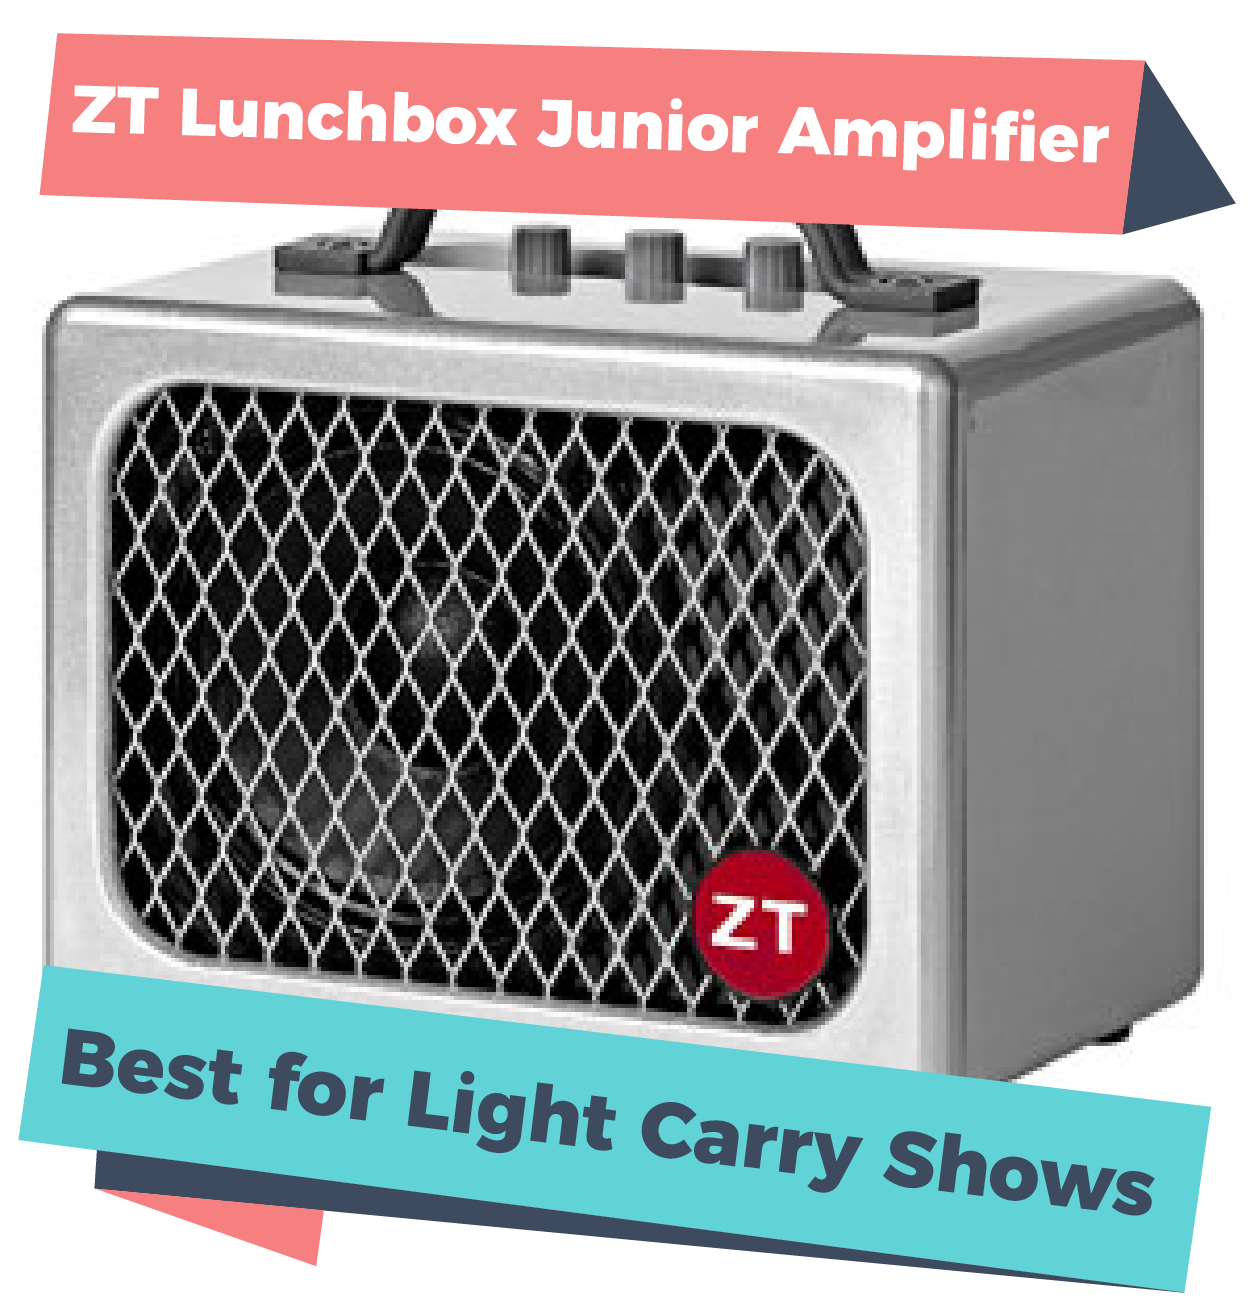 ZT Lunchbox Junior Amplifier, one of the best amps for busking